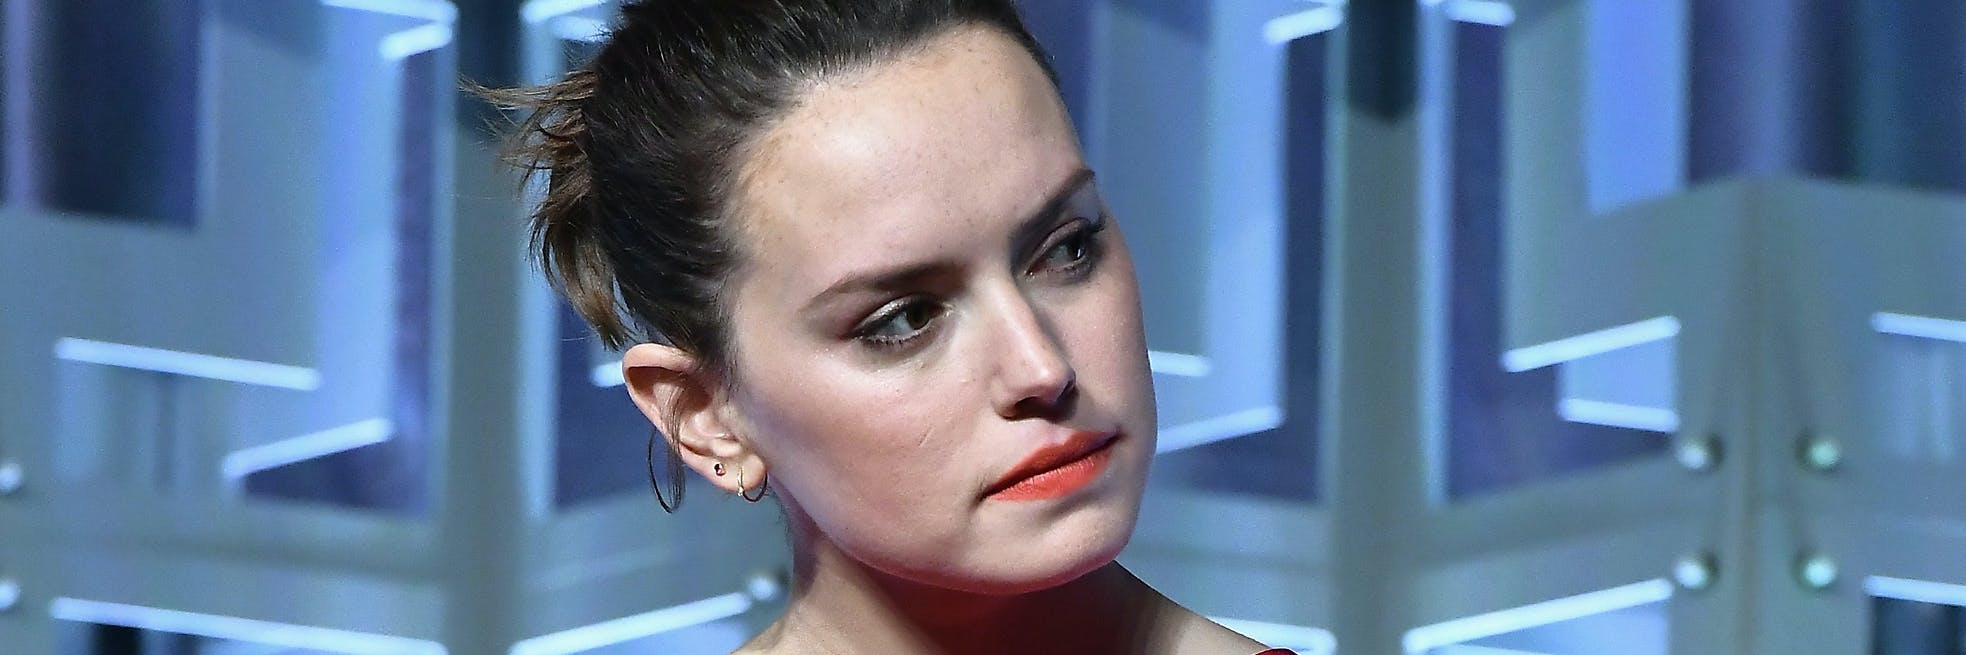 ORLANDO, FL - APRIL 14:  Daisy Ridley attends the Star Wars Celebration day 02  on April 14, 2017 in Orlando, Florida.  (Photo by Gustavo Caballero/Getty Images)